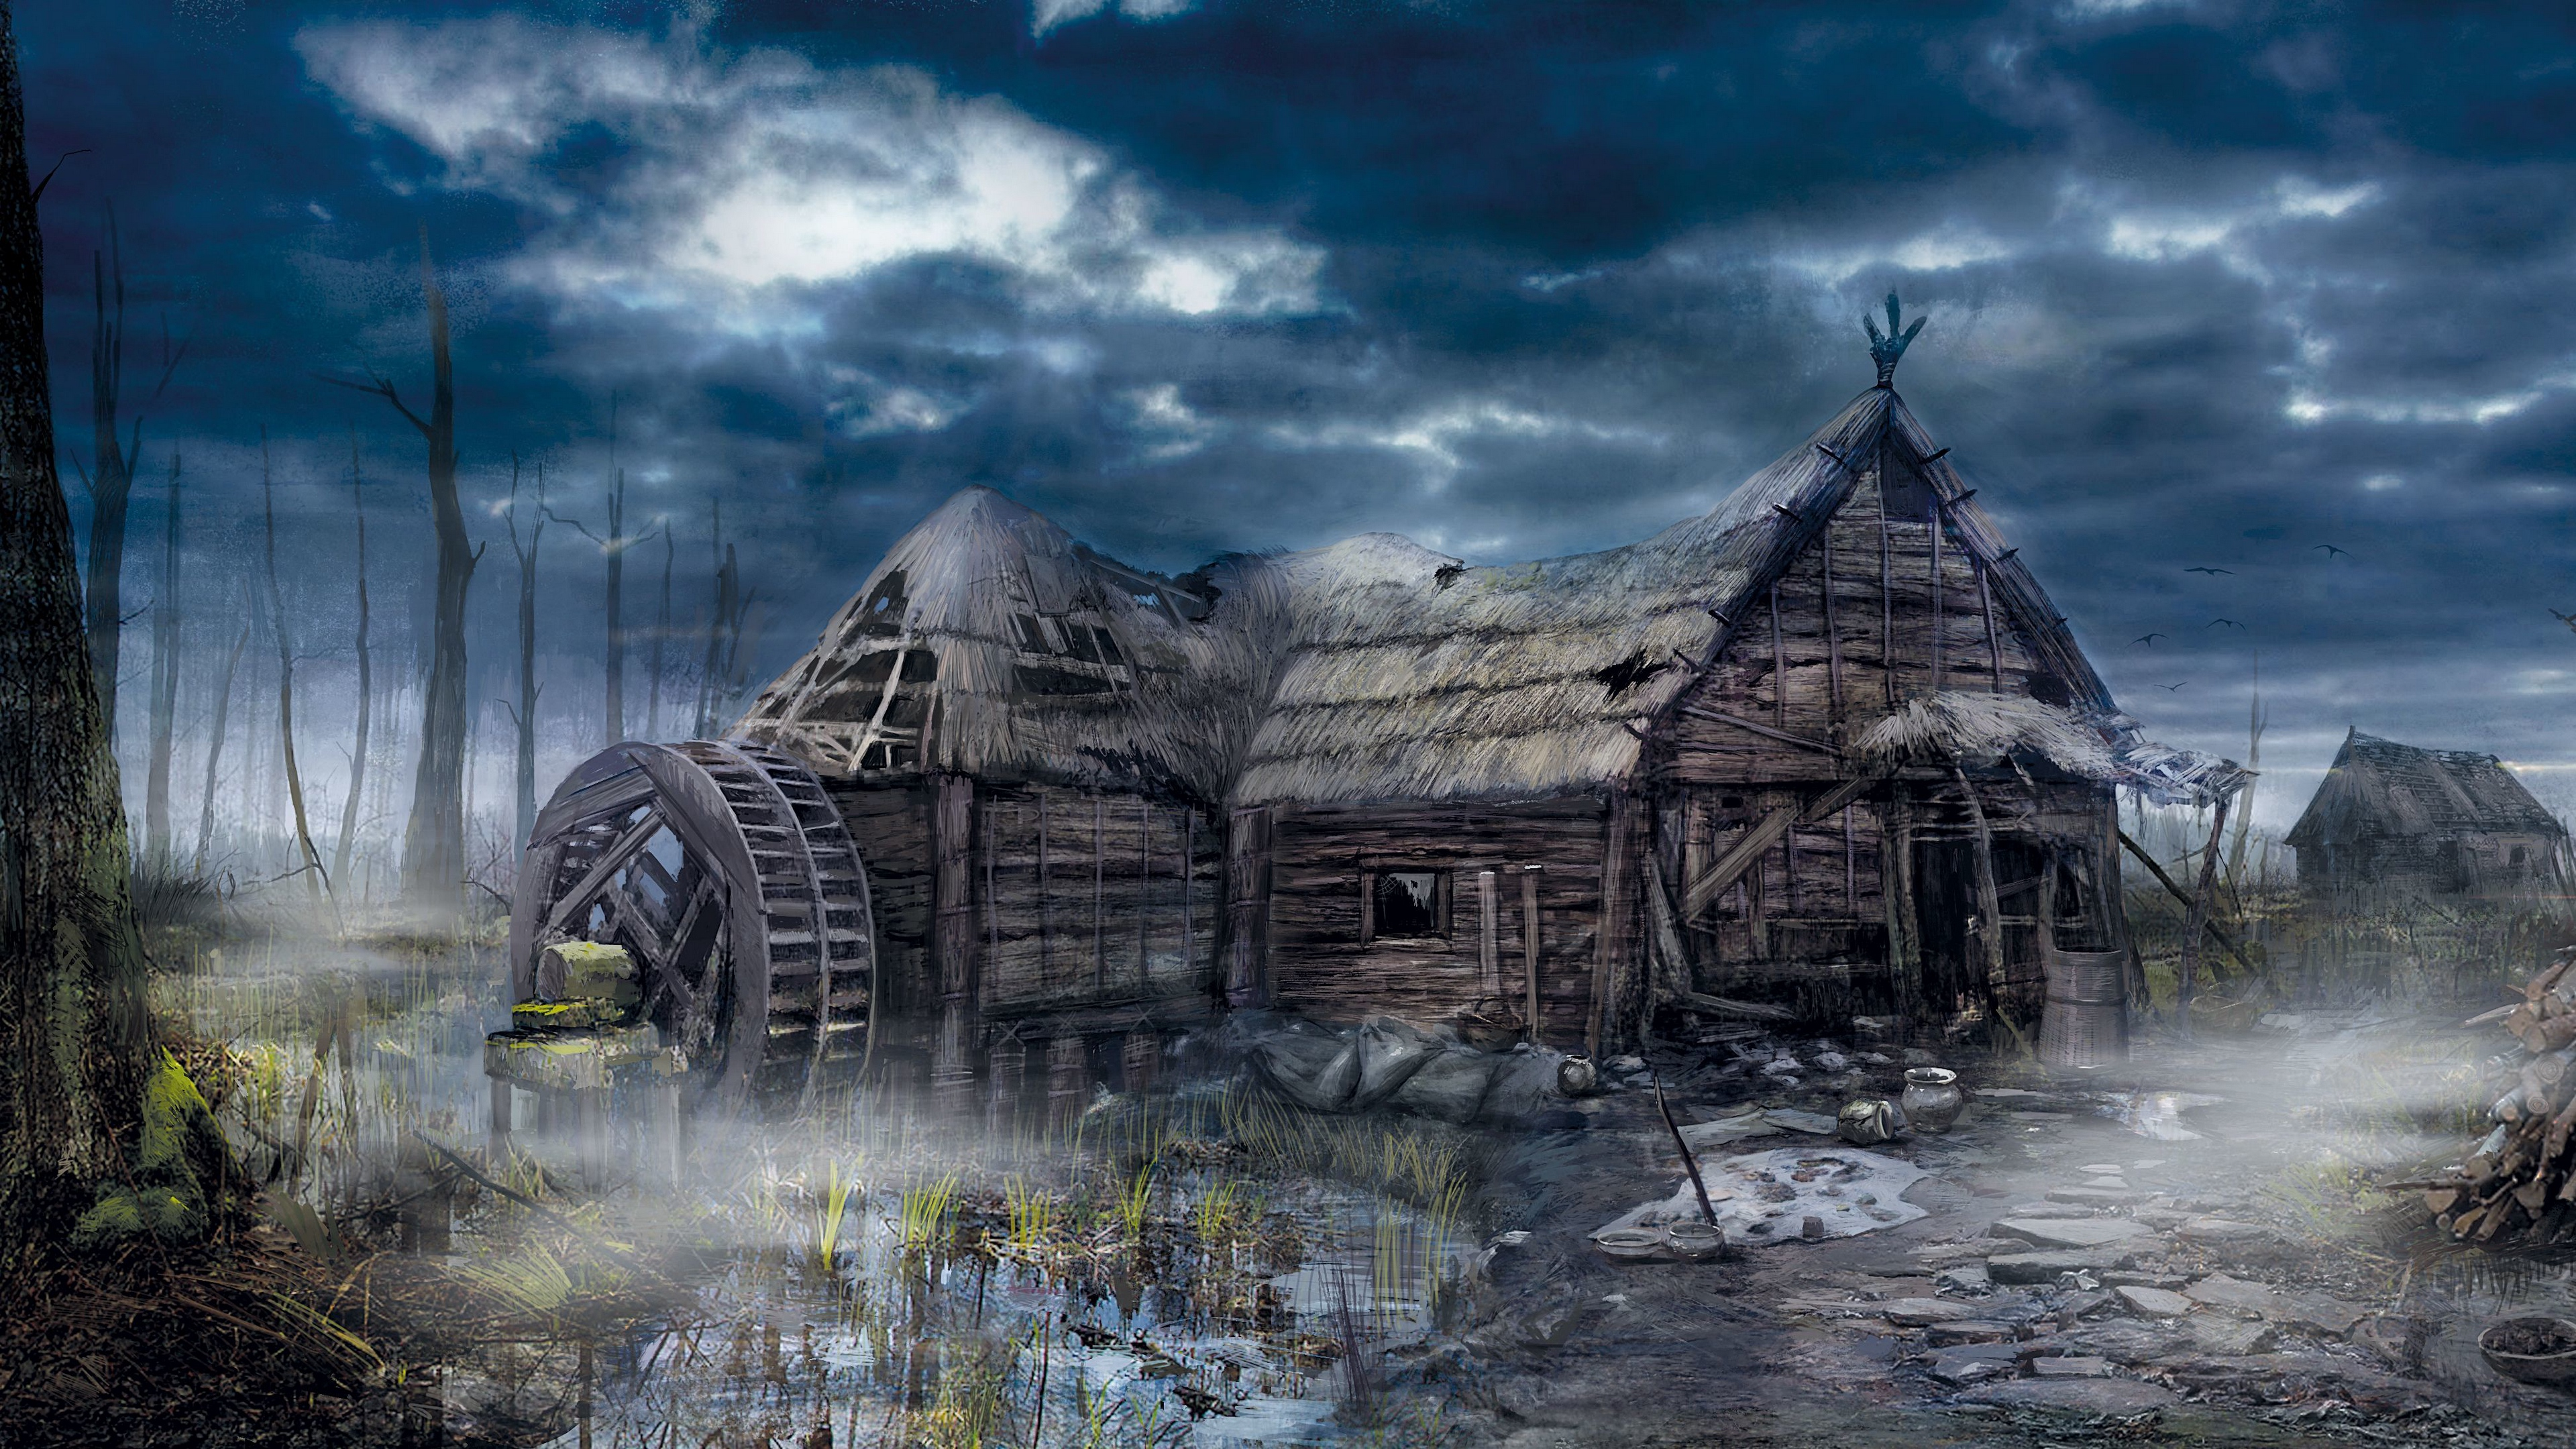 the witcher 3 wild hunt village house art 4k 1538944988 - the witcher 3, wild hunt, village, house, art 4k - wild hunt, village, the witcher 3